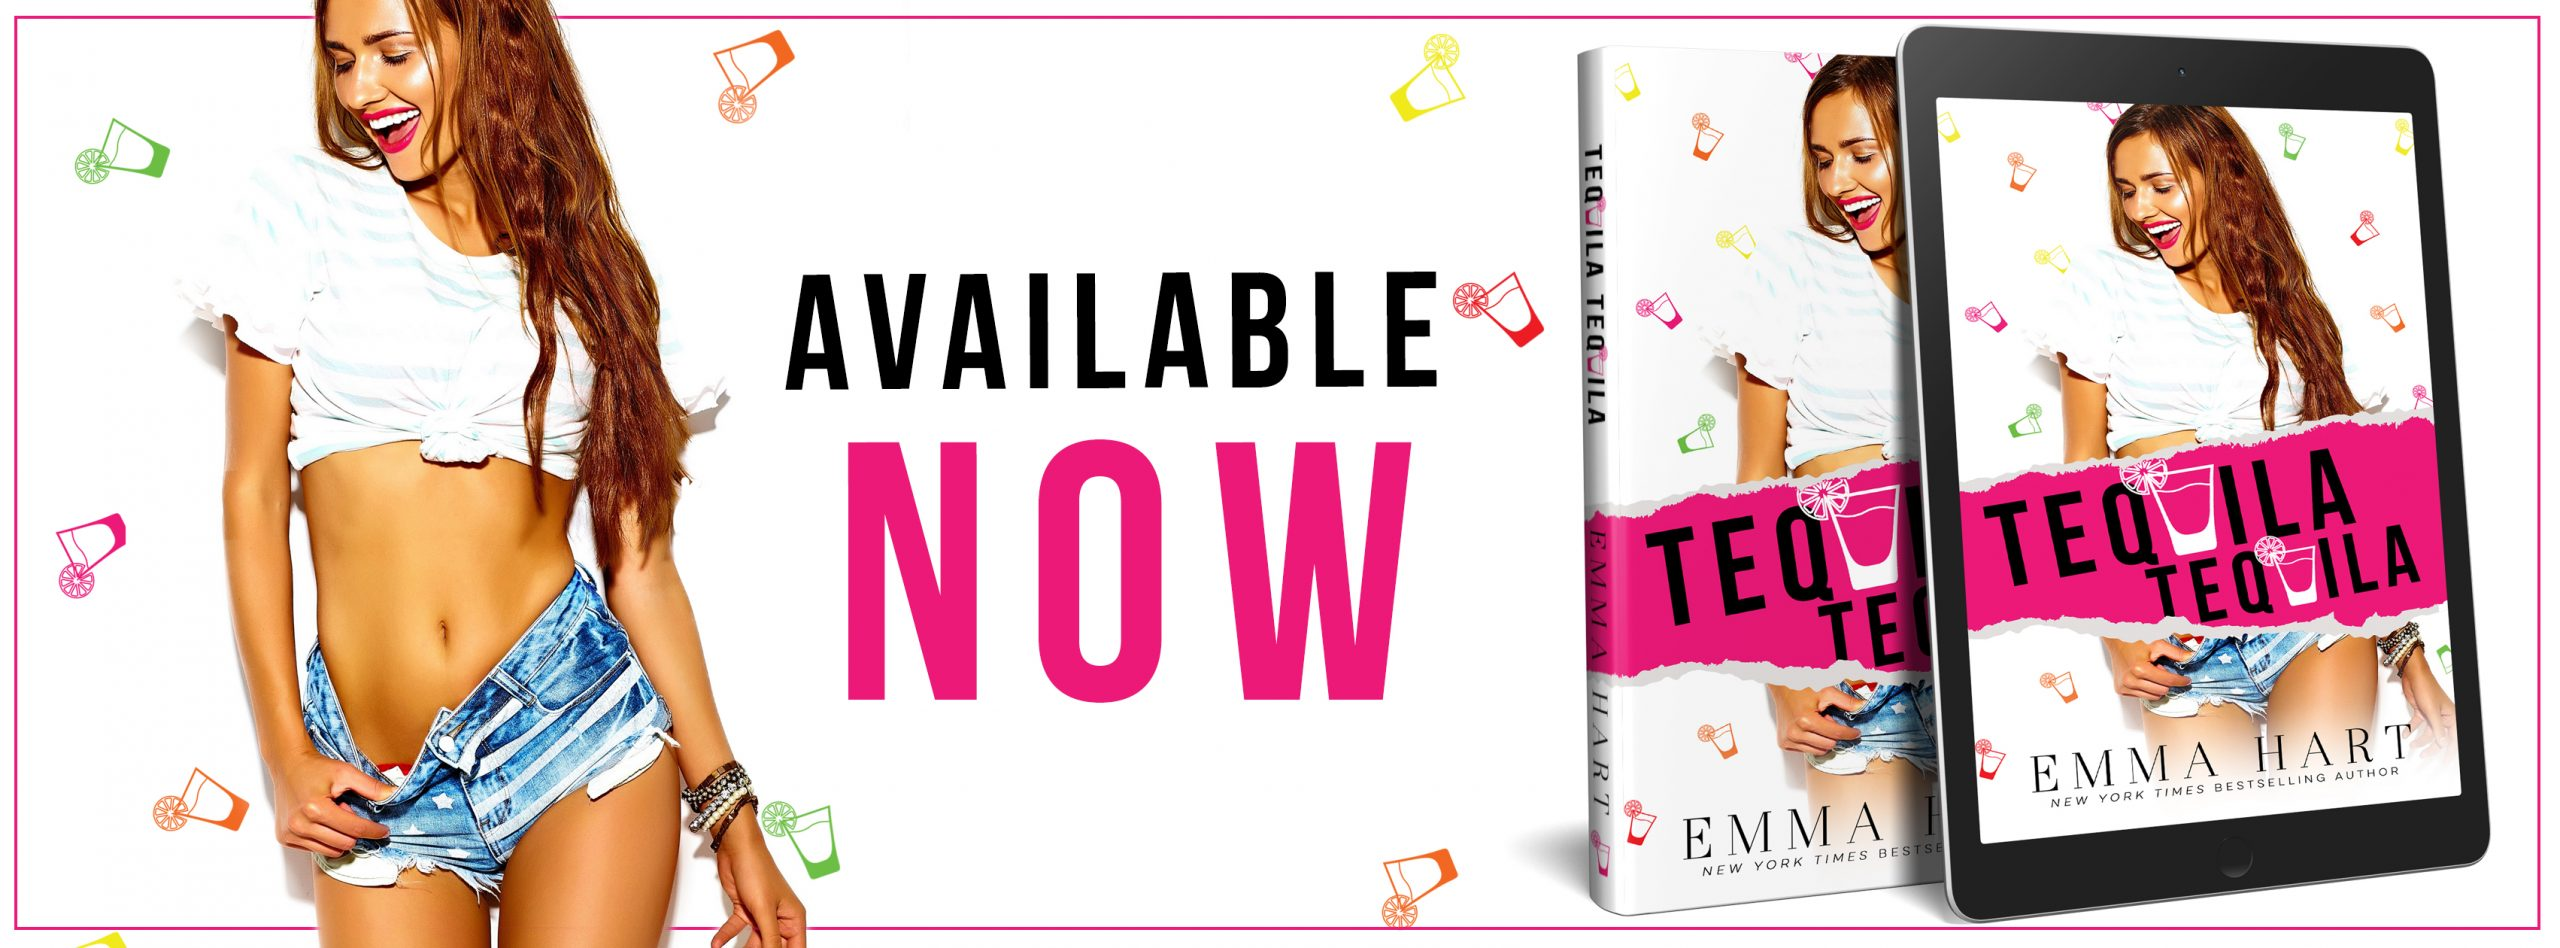 Blog Tour Review with Excerpt:  Tequila, Tequila by Emma Hart